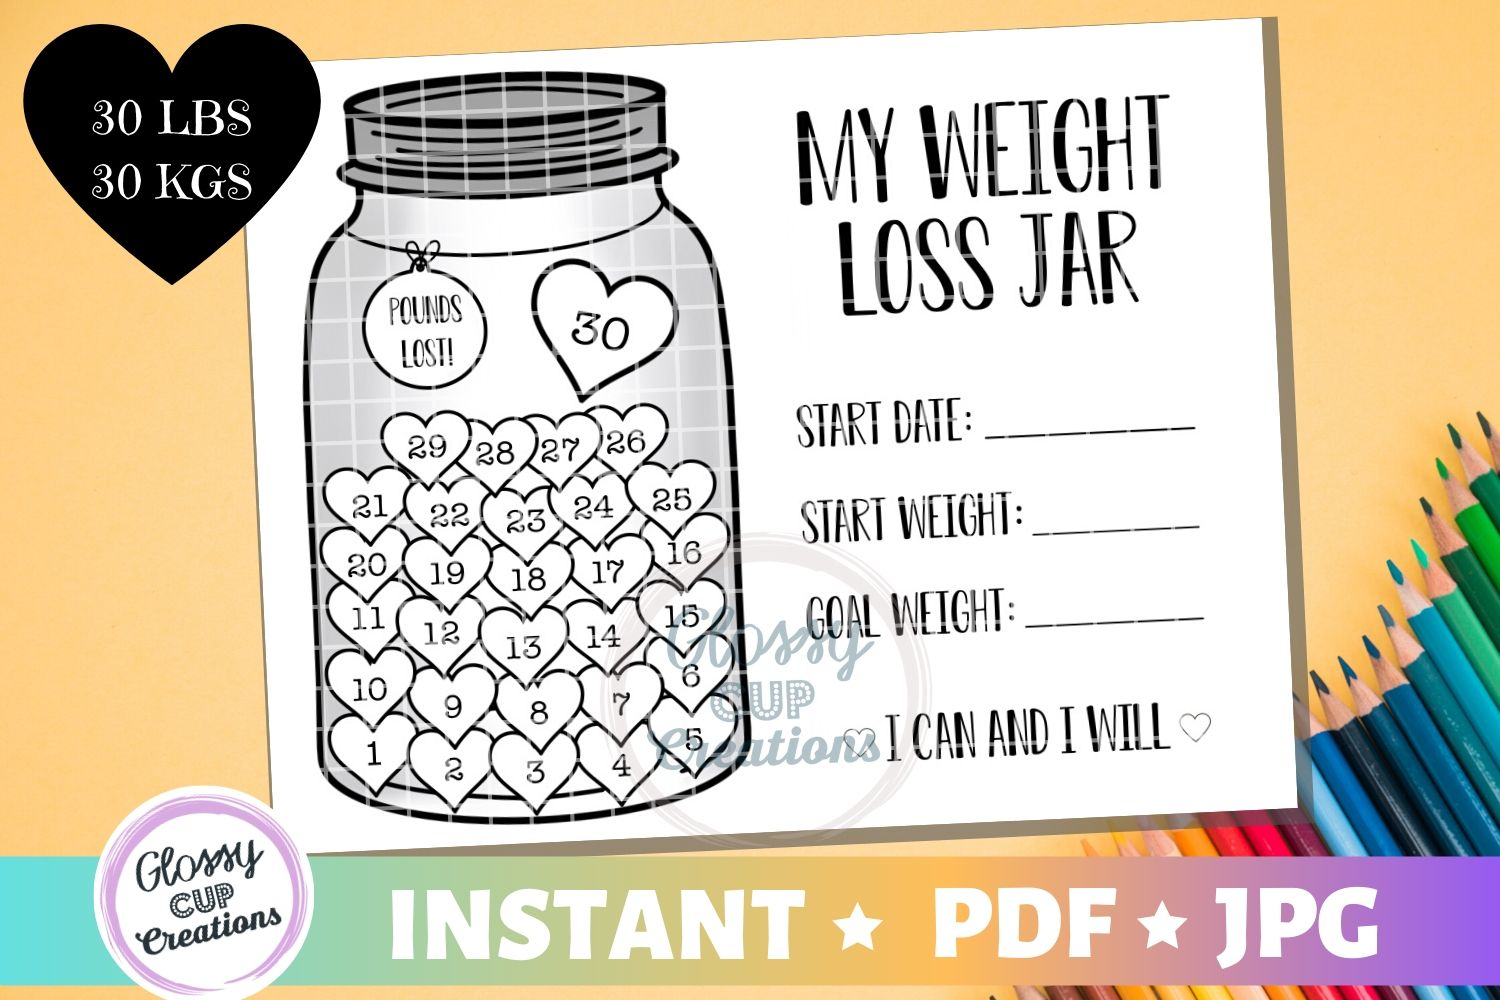 Download Free Weight Loss Jar 30 Lbs Graphic By Suzannecornejo Creative for Cricut Explore, Silhouette and other cutting machines.